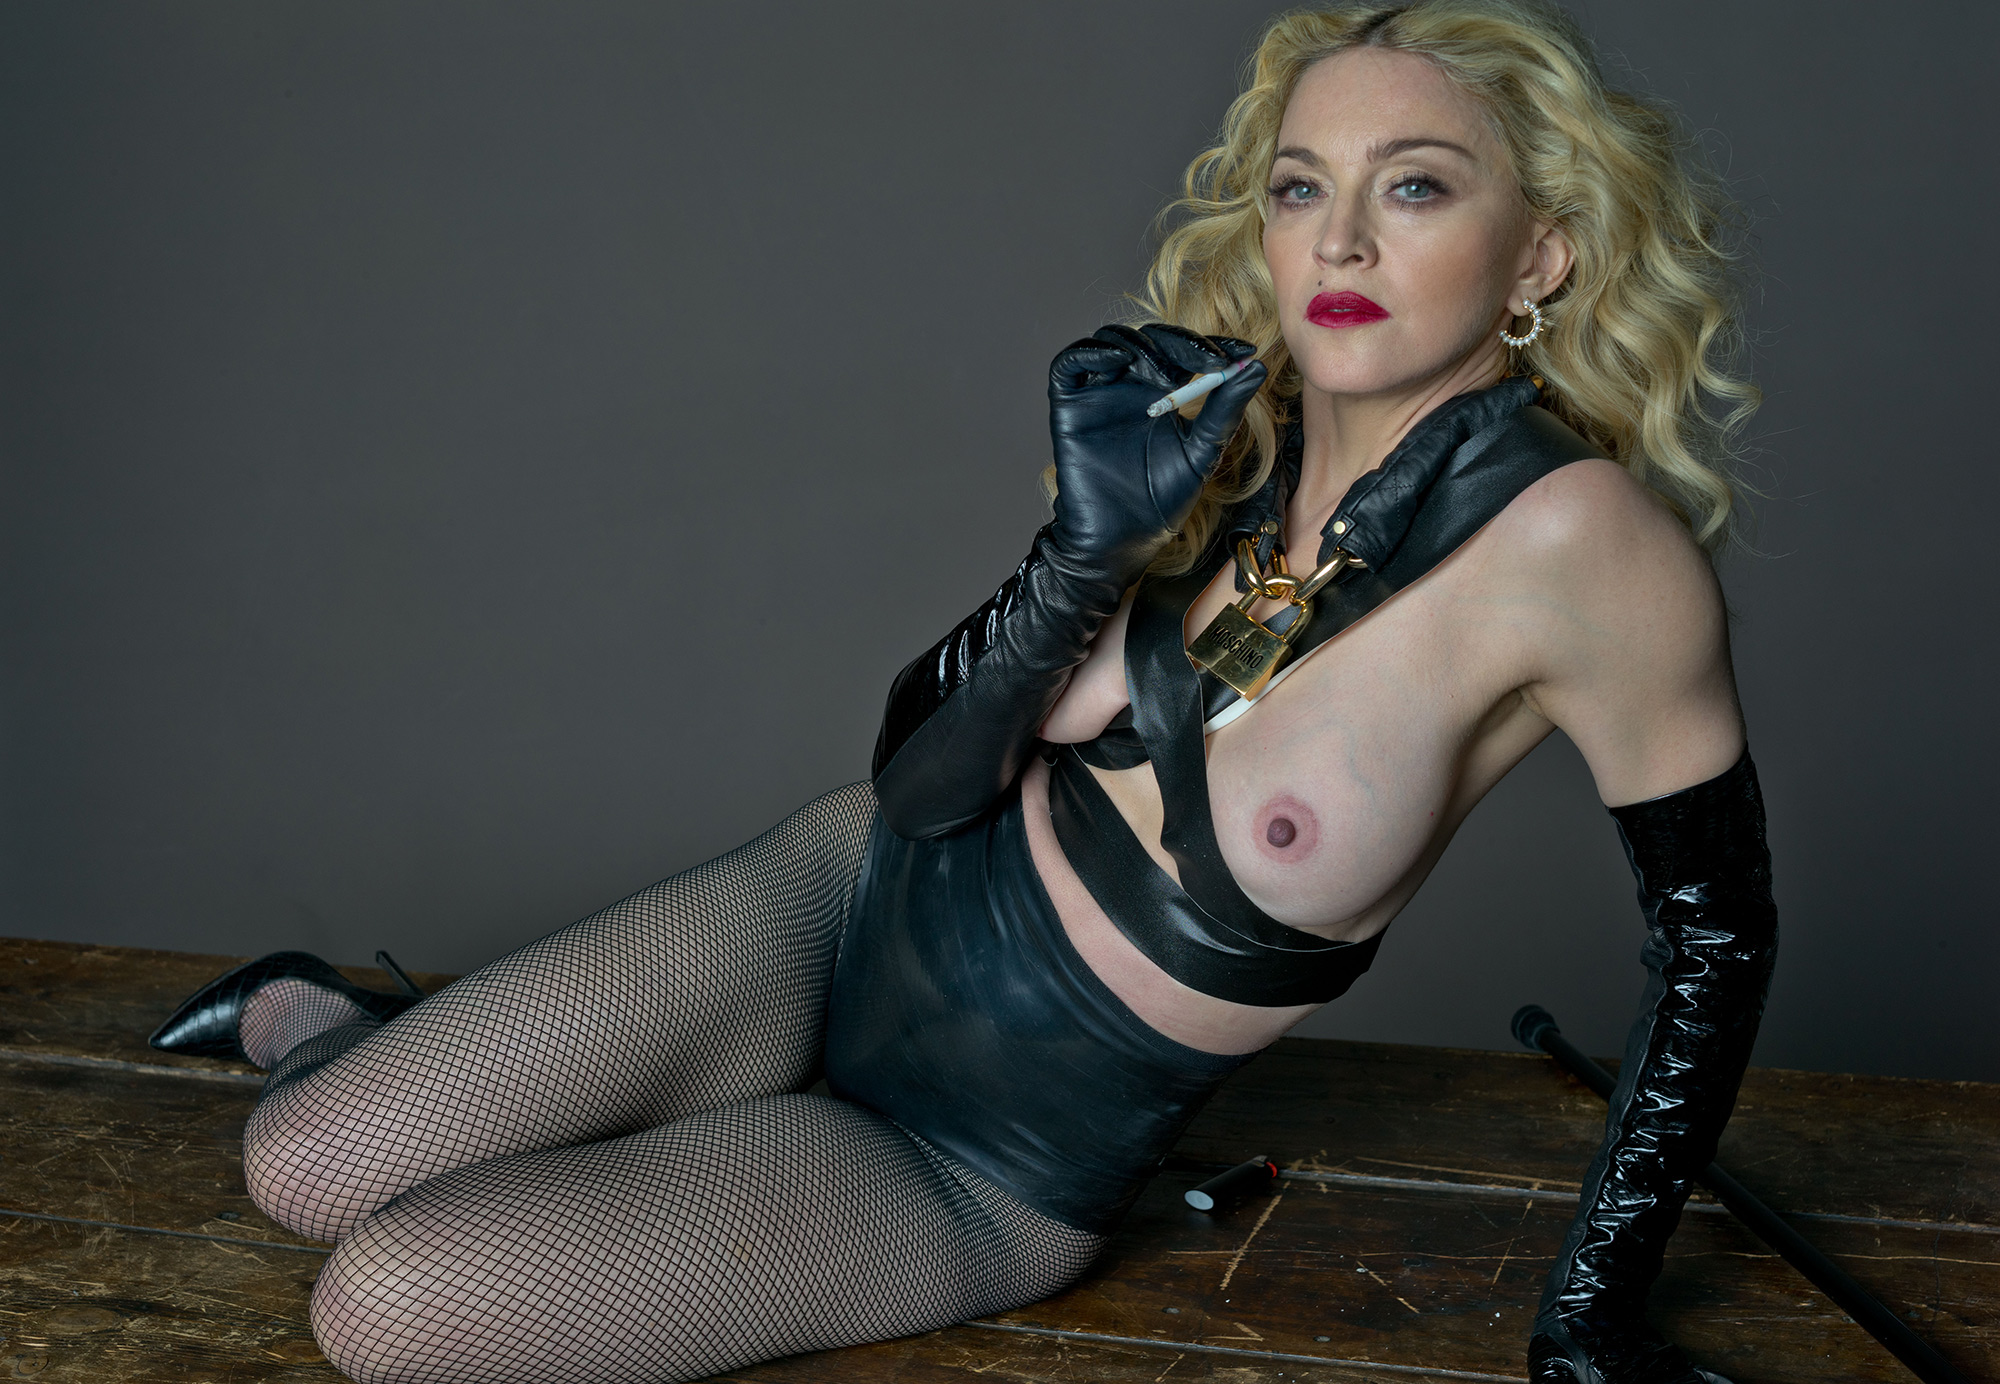 Can suggest Madonna nude naked tits consider